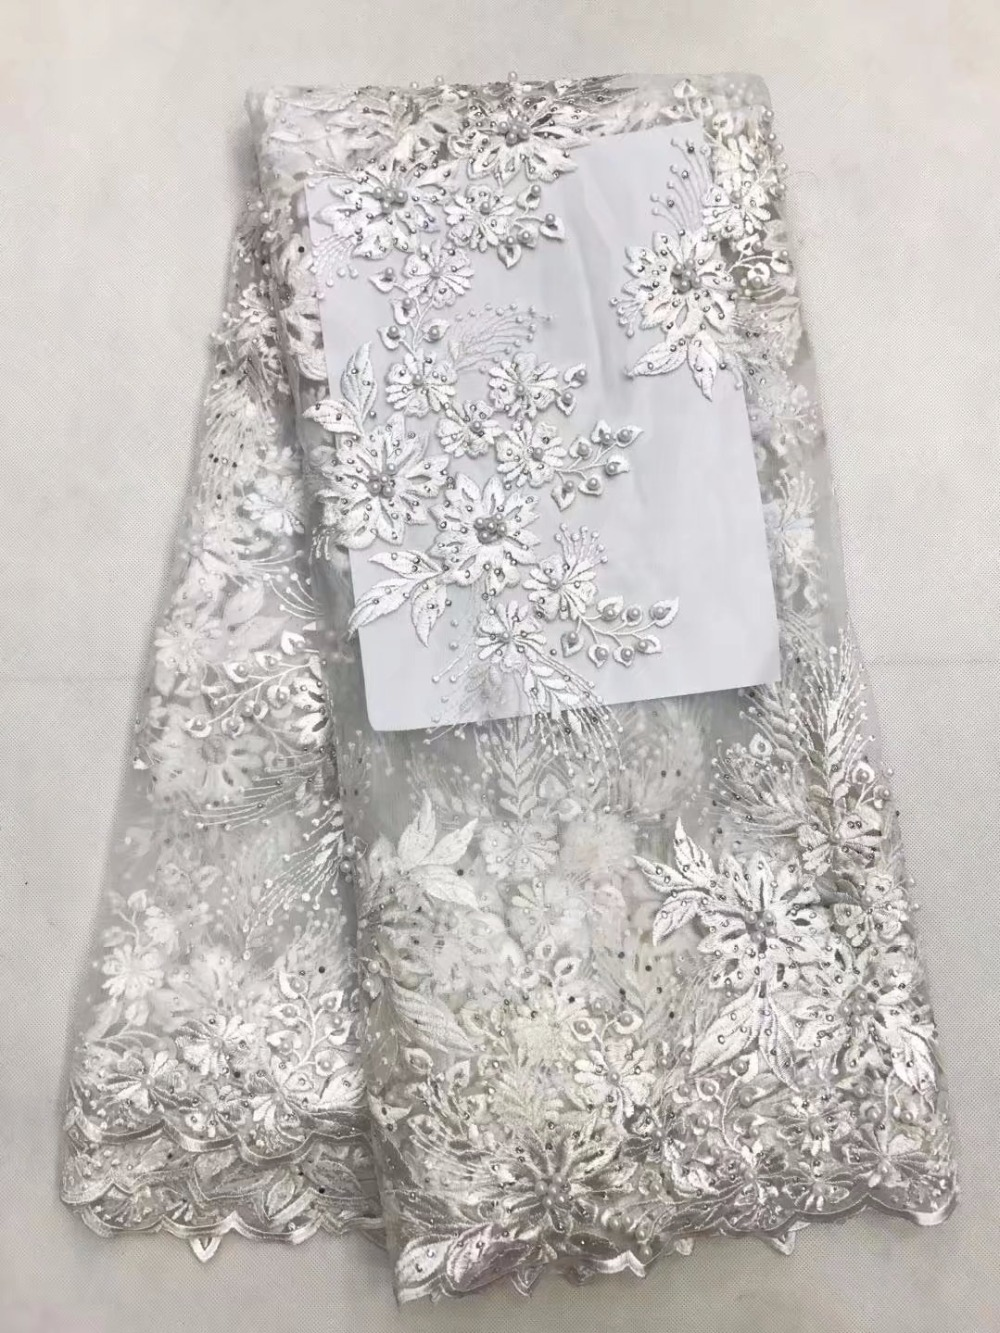 High Quality African Cord Lace With Rhinestones,White Nigerian Guipure Lace Fabrics Women Latest 2017.African lace fabric LY8801